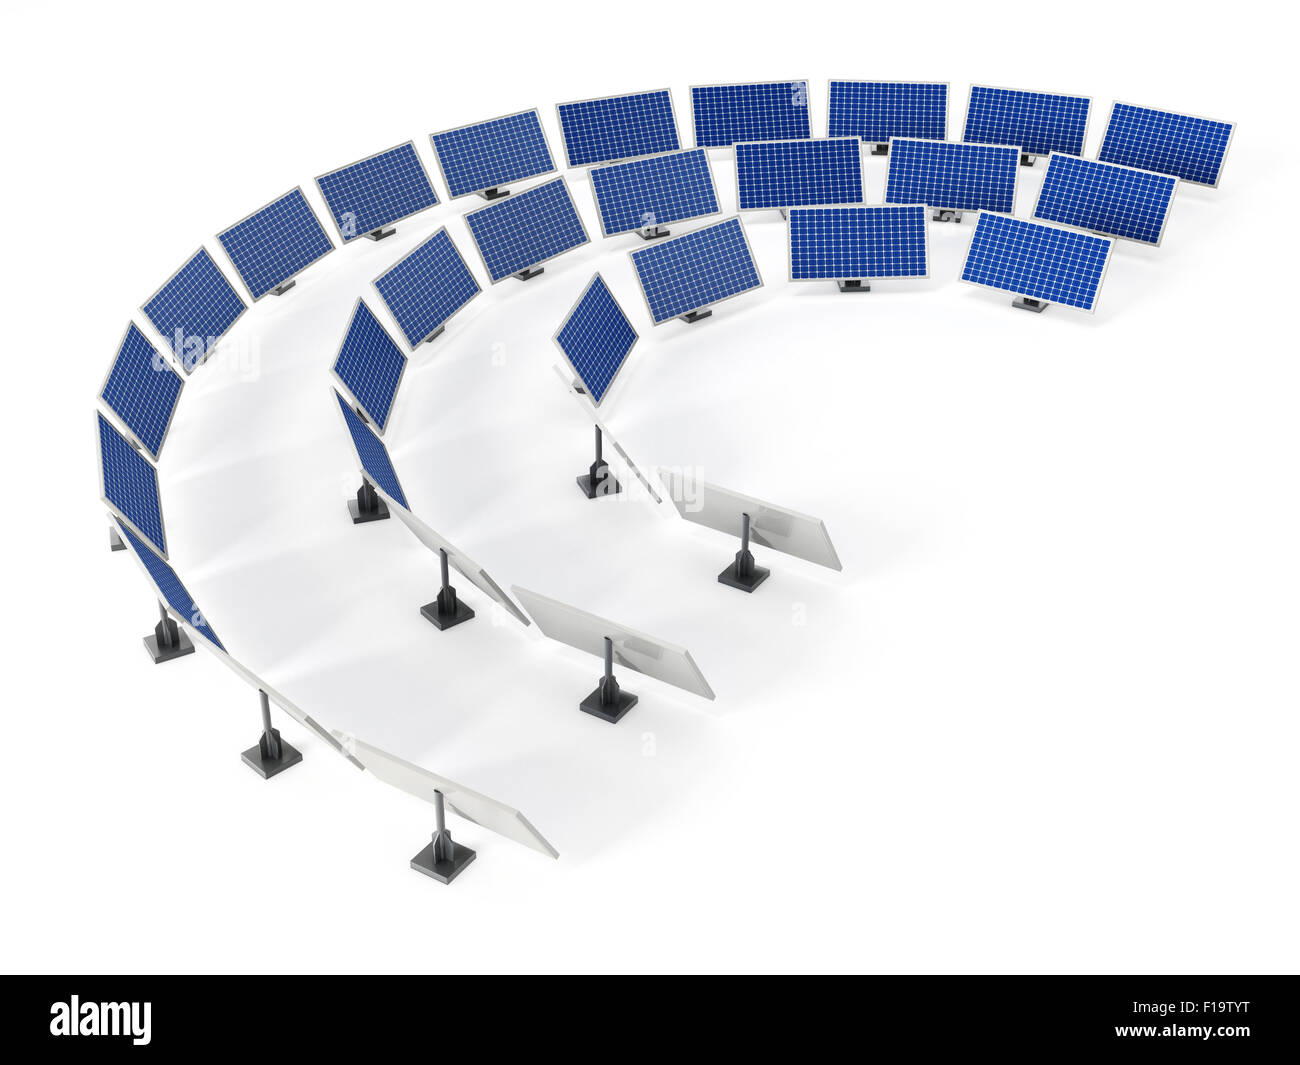 Solar panels arranged in circular formation. - Stock Image